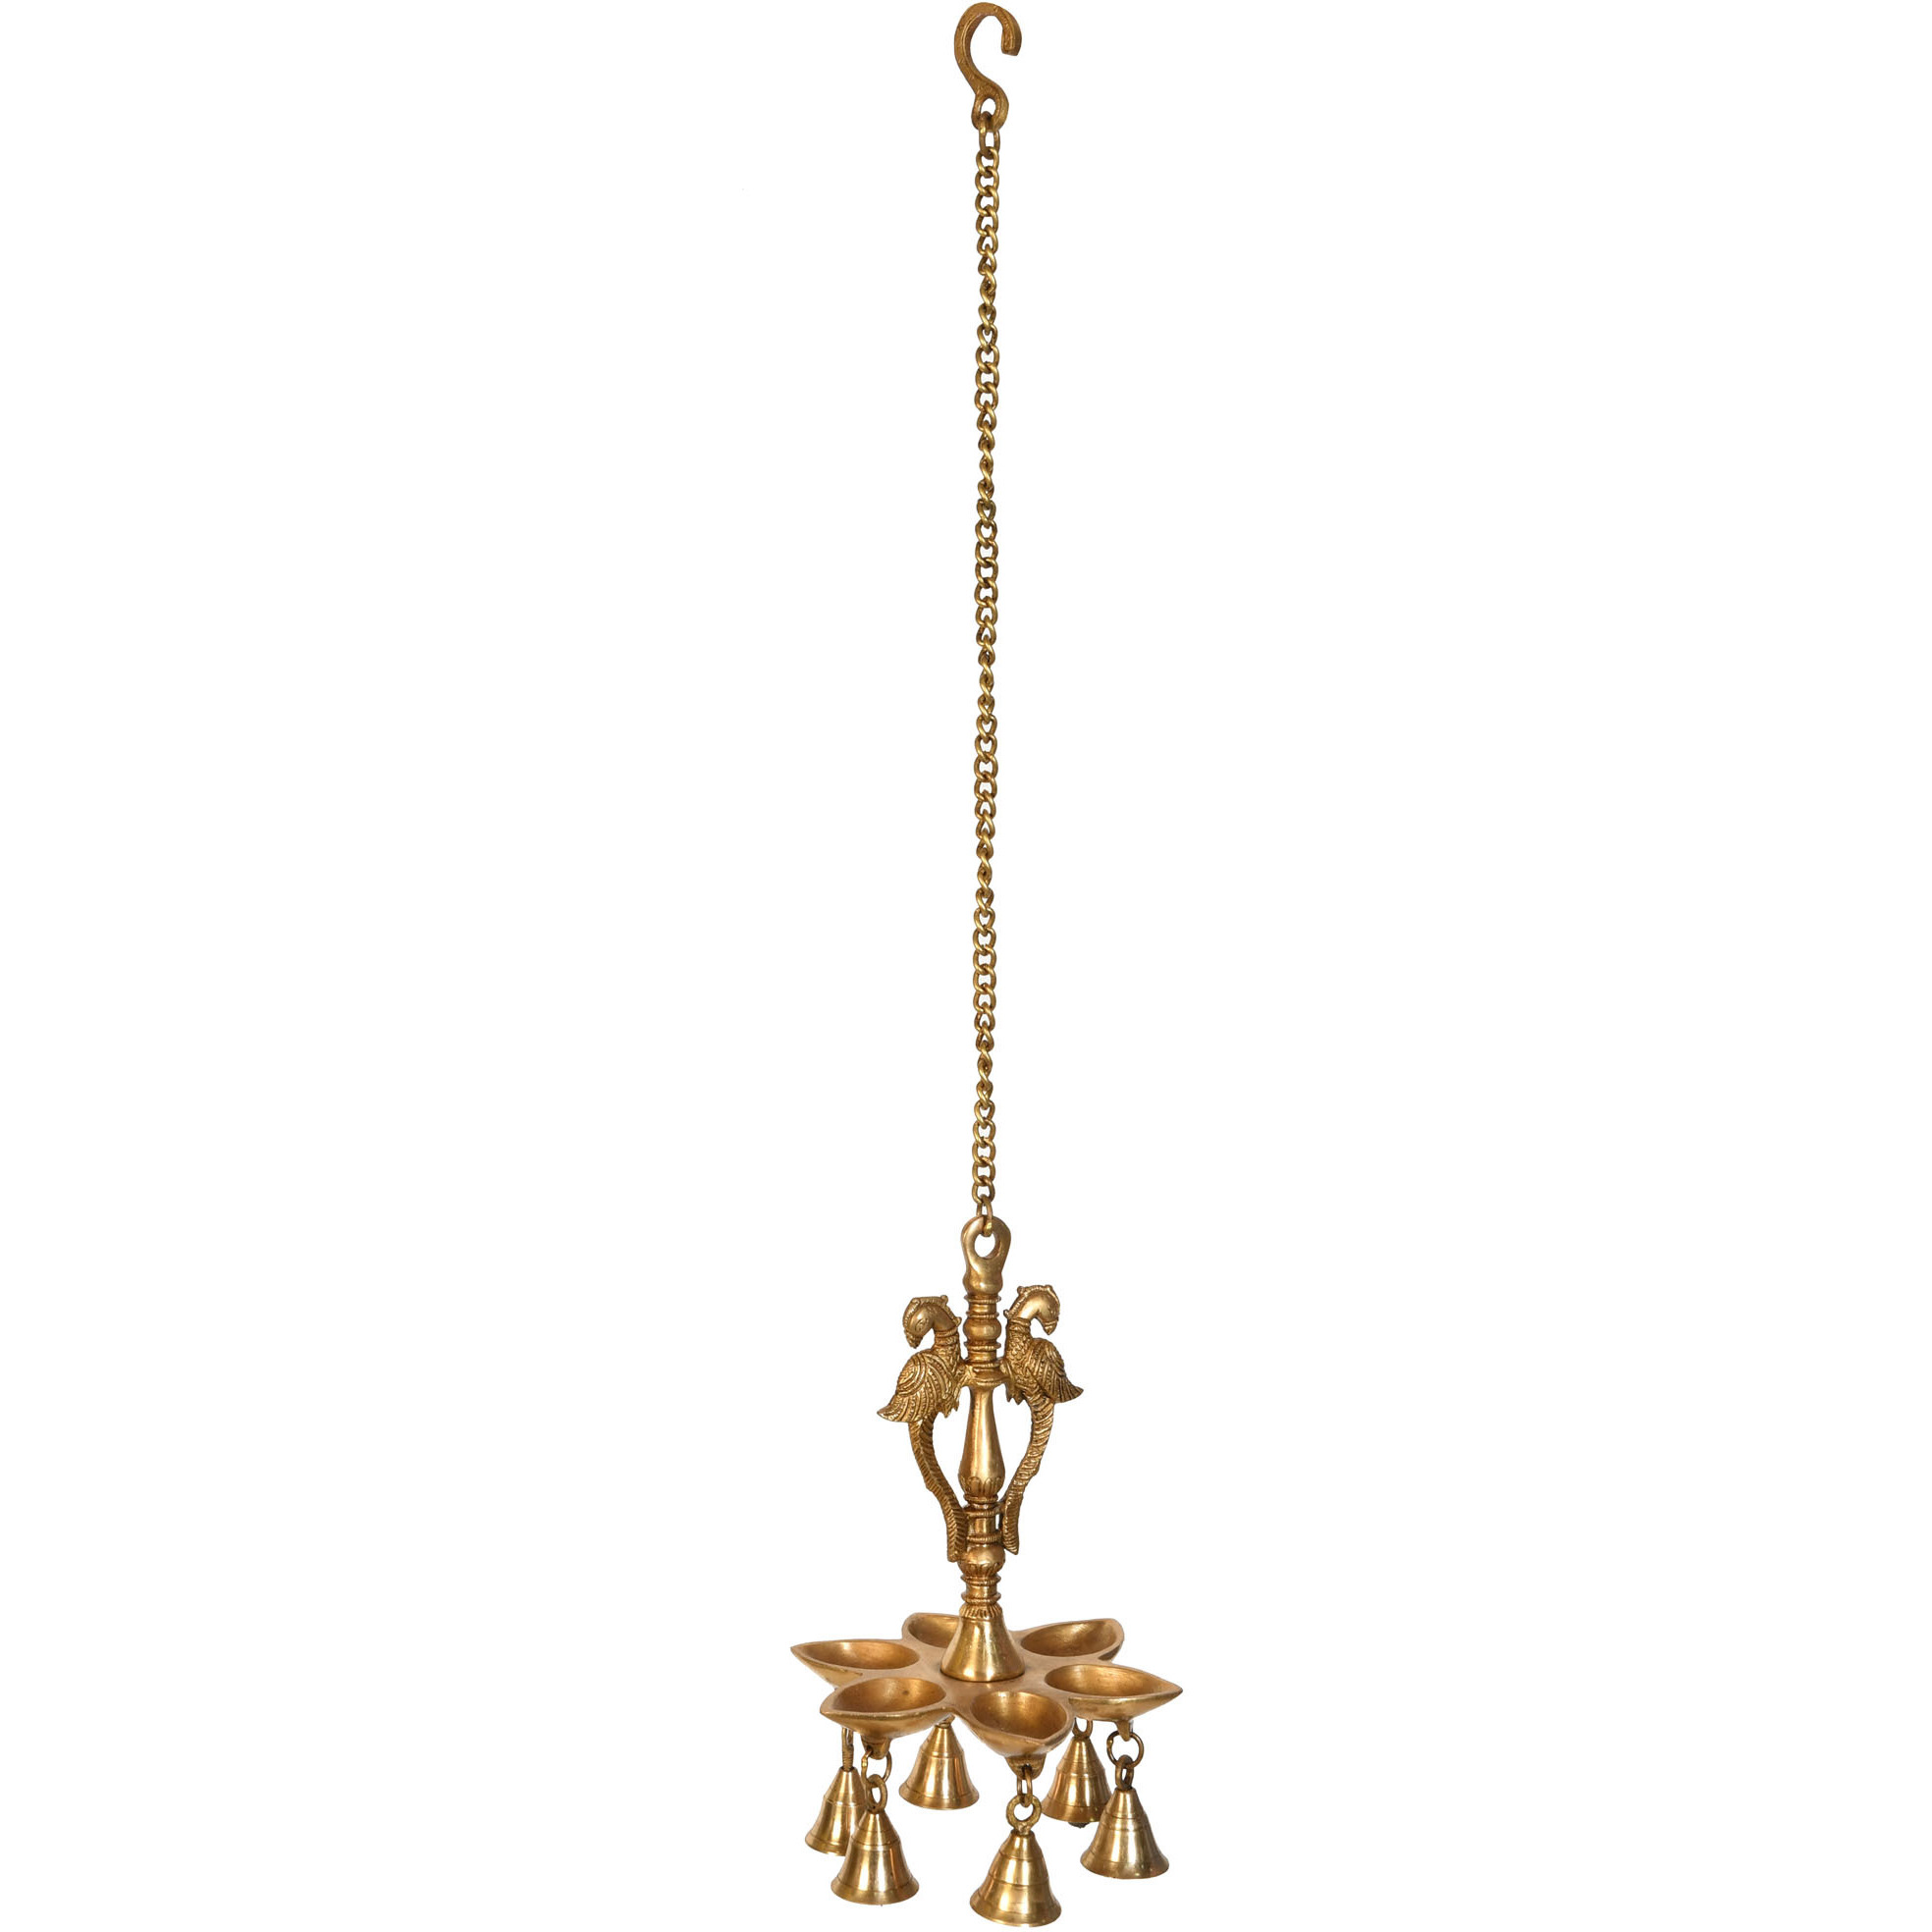 Parrot Hanging Lamp with Bells